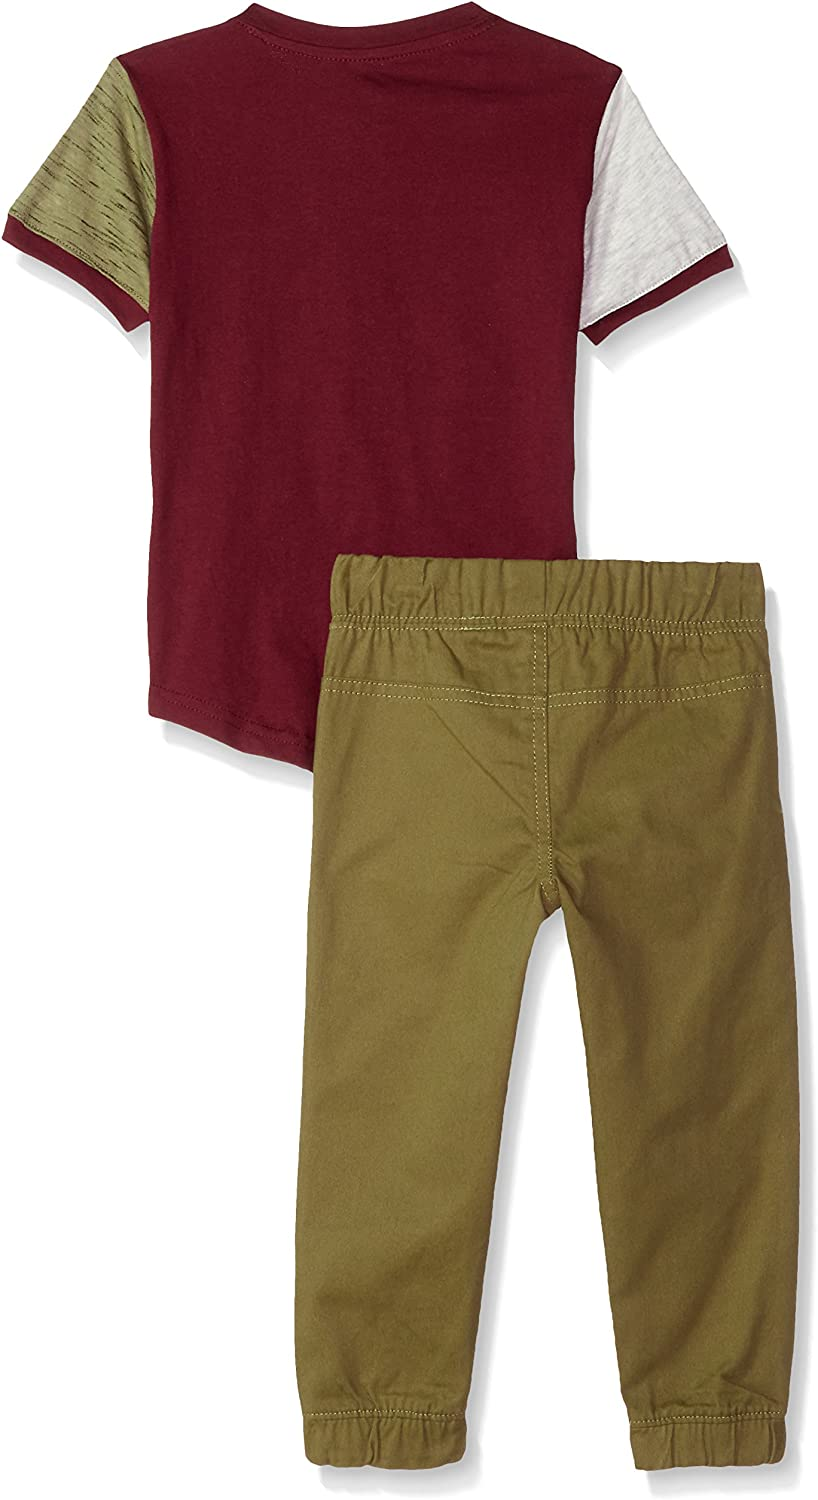 Beverly Hills Polo Club Boys Short Sleeve Top /& Twill Pant Set